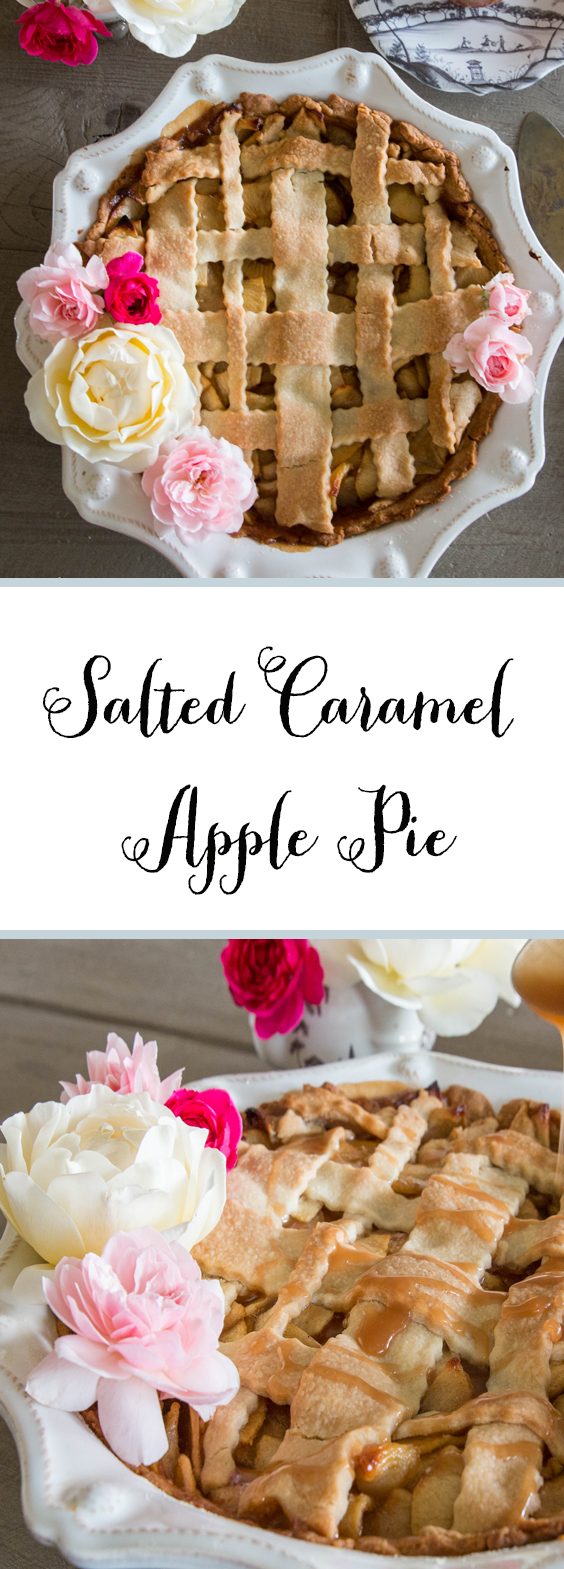 Pretty Salted Caramel Apple Pie and Recipe